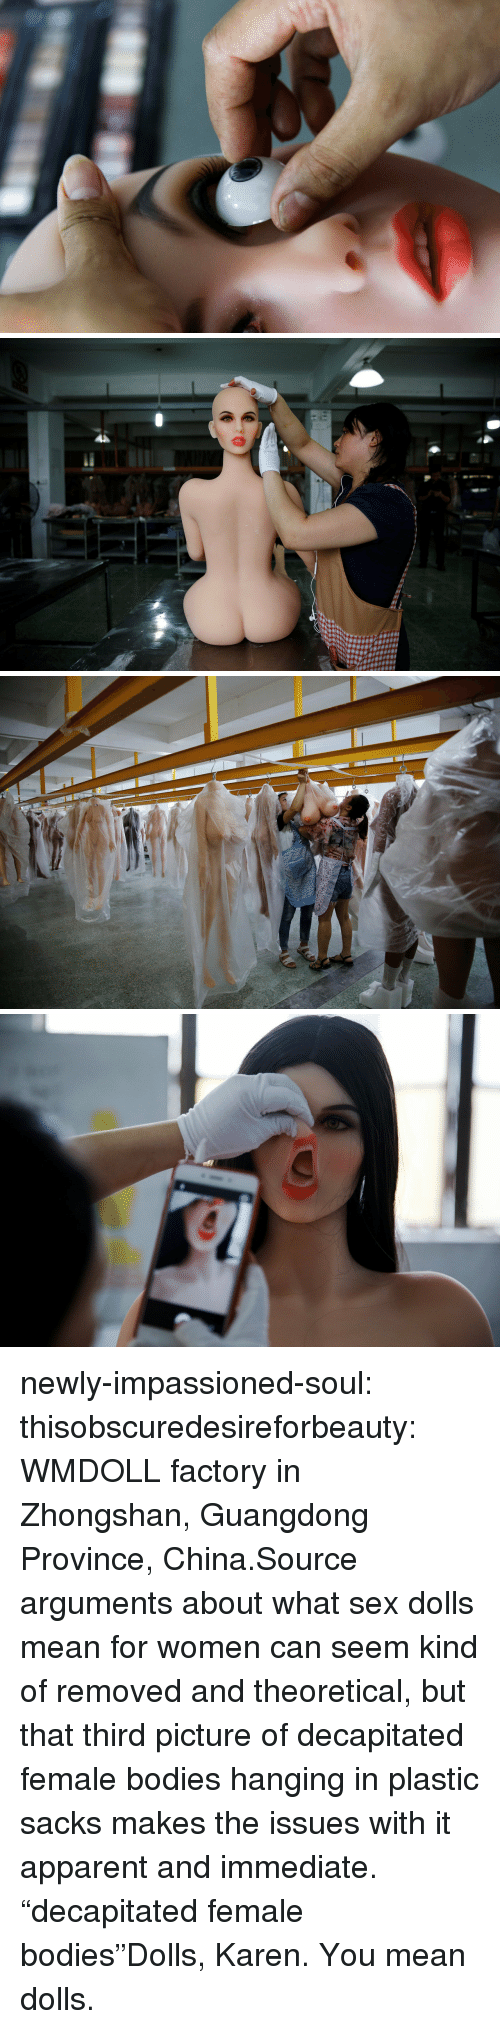 """Bodies , News, and Sex: newly-impassioned-soul:  thisobscuredesireforbeauty: WMDOLL factory in Zhongshan, Guangdong Province, China.Source arguments about what sex dolls mean for women can seem kind of removed and theoretical, but that third picture of decapitated female bodies hanging in plastic sacks makes the issues with it apparent and immediate.  """"decapitated female bodies""""Dolls, Karen. You mean dolls."""